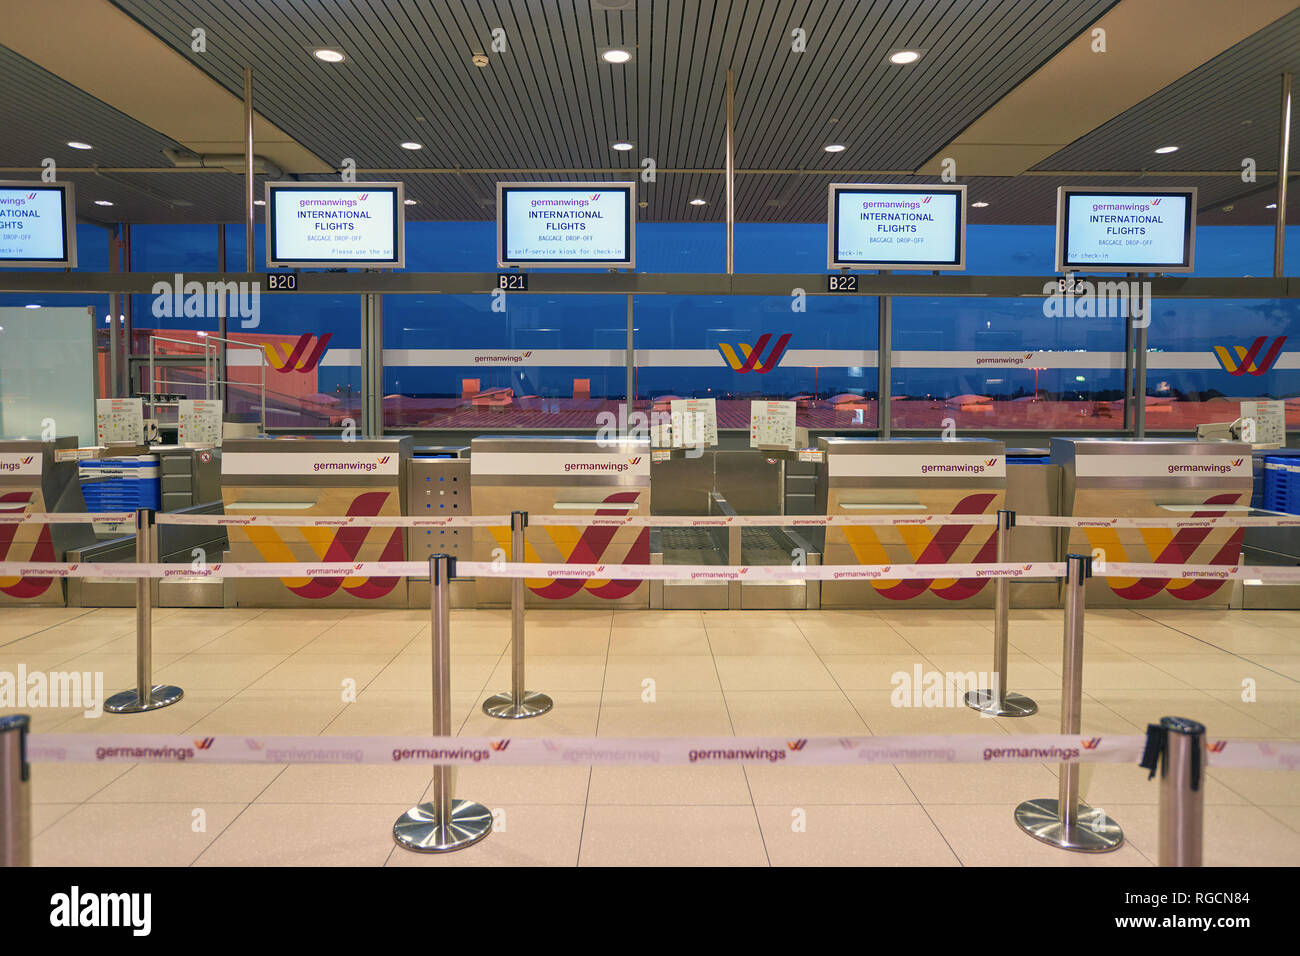 Germanwings Check In Counter Stock Photos Germanwings Check In